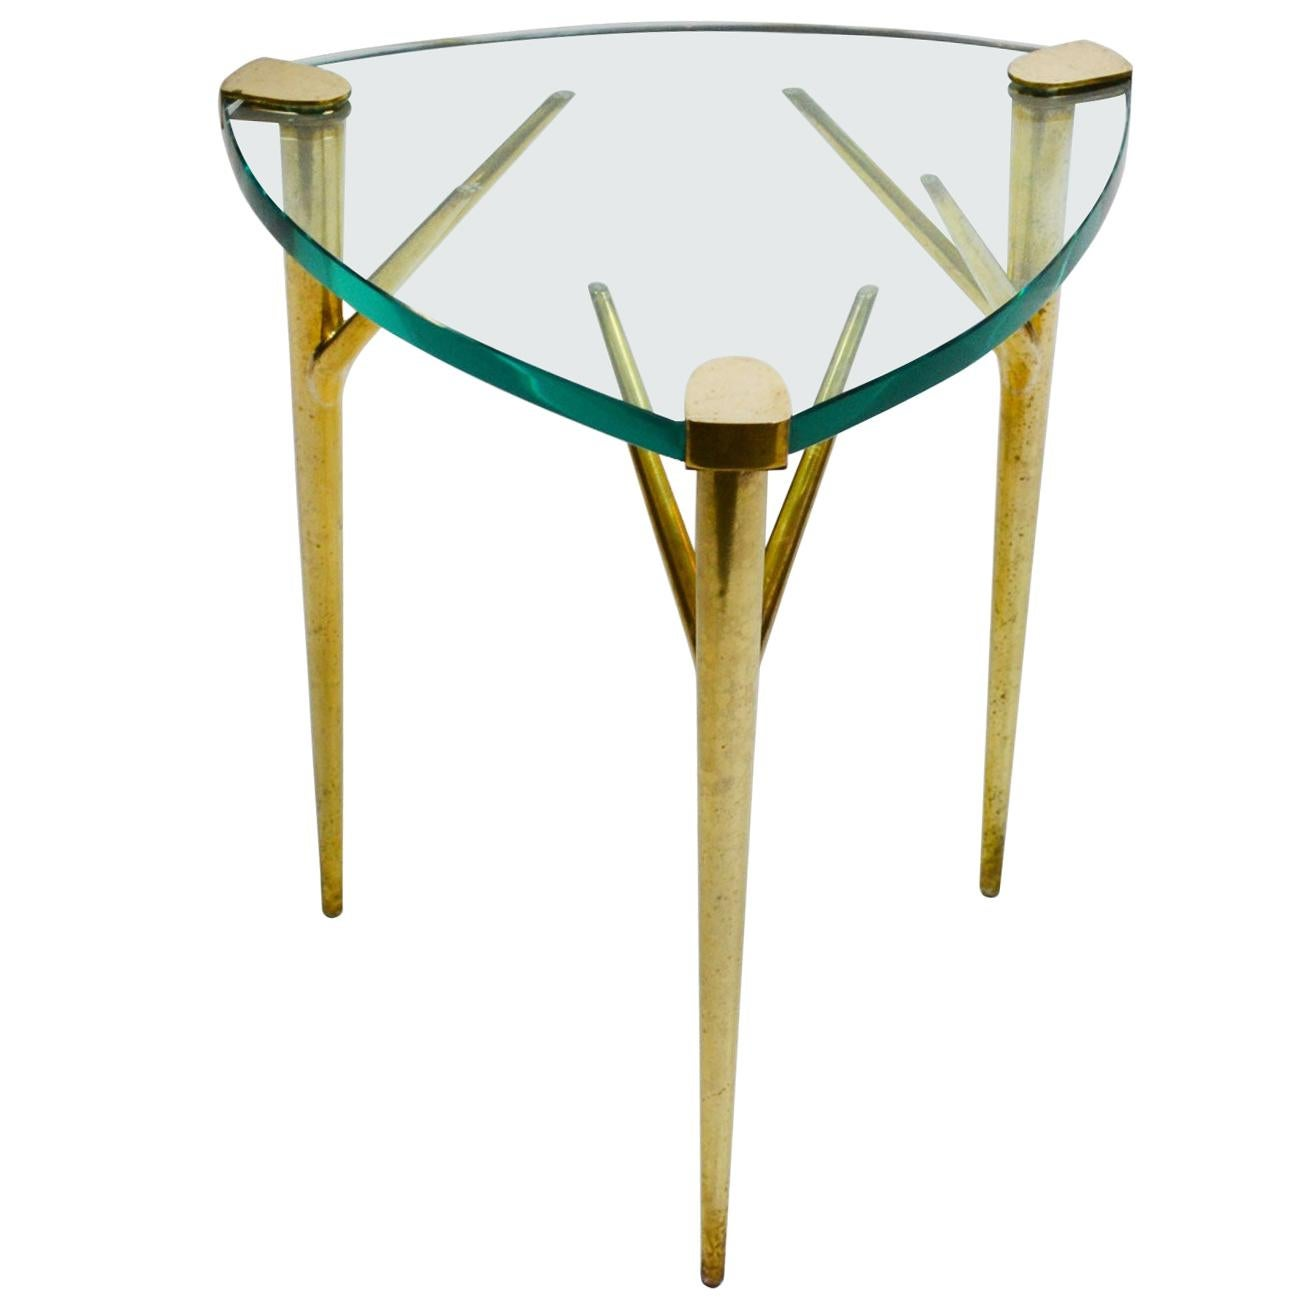 20th Century Max Ingrand Coffee Table for Fontana Arte Brass and Ground Glass